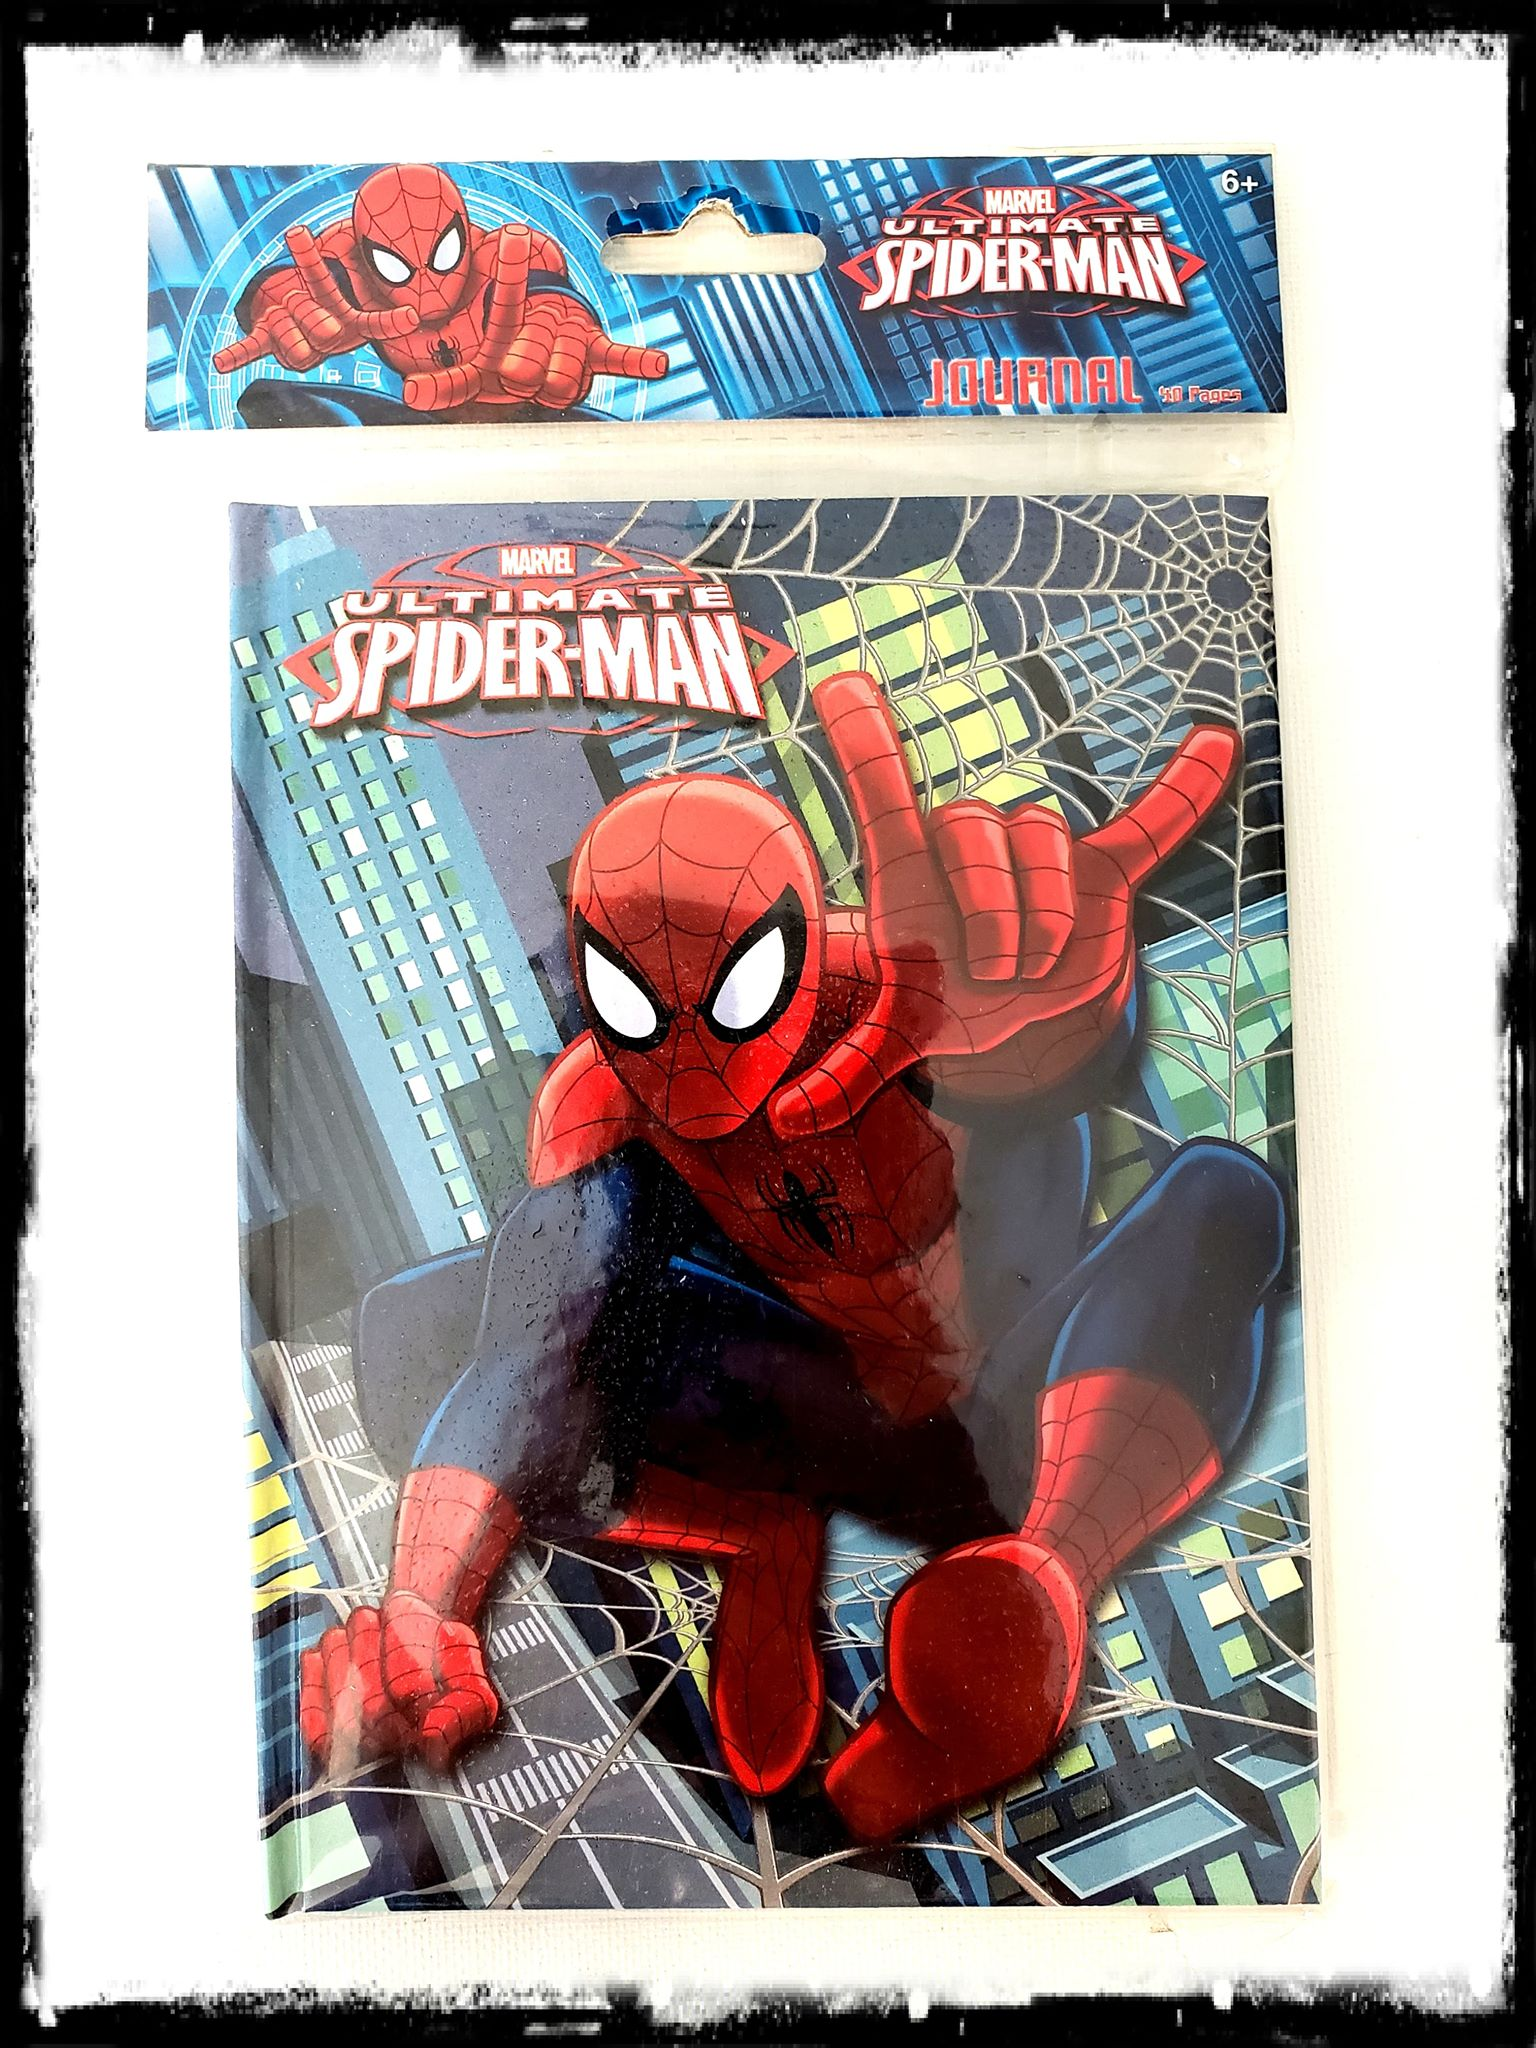 MARVEL - SPIDER-MAN - DIARY / JOURNAL / NOTEPAD